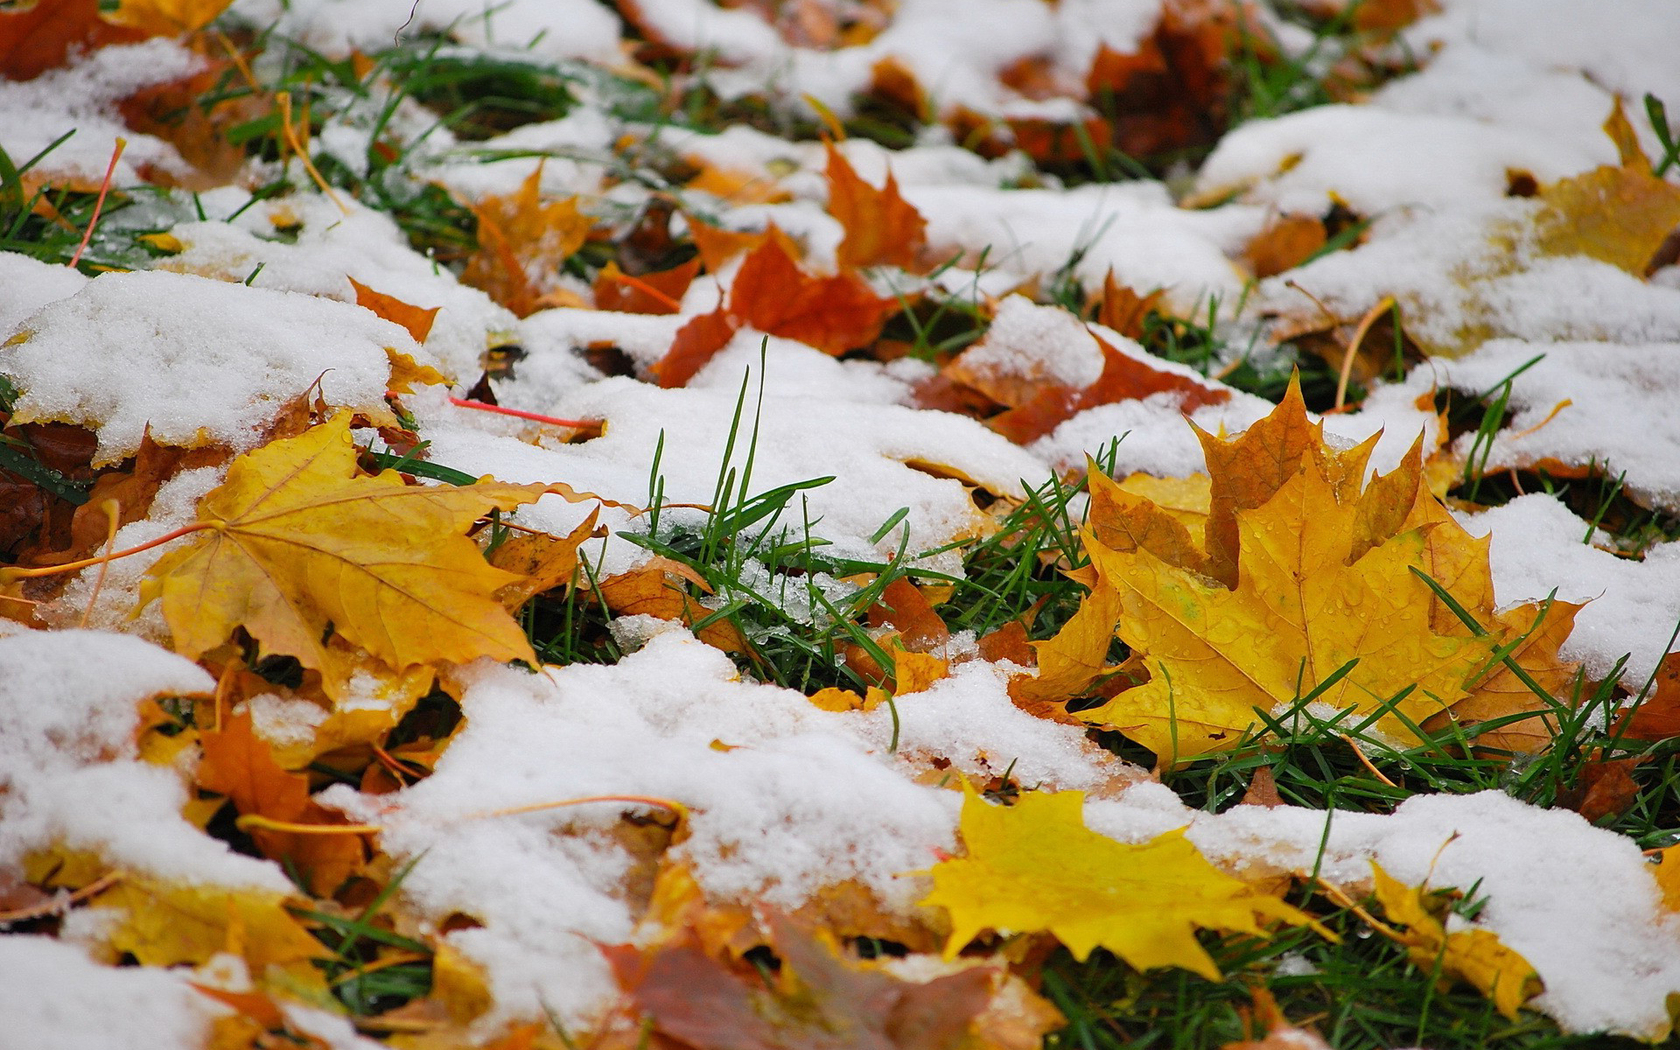 Hd Fall Wallpaper Backgrounds Snow On Autumn Leaves Wallpapers 1680x1050 1739233